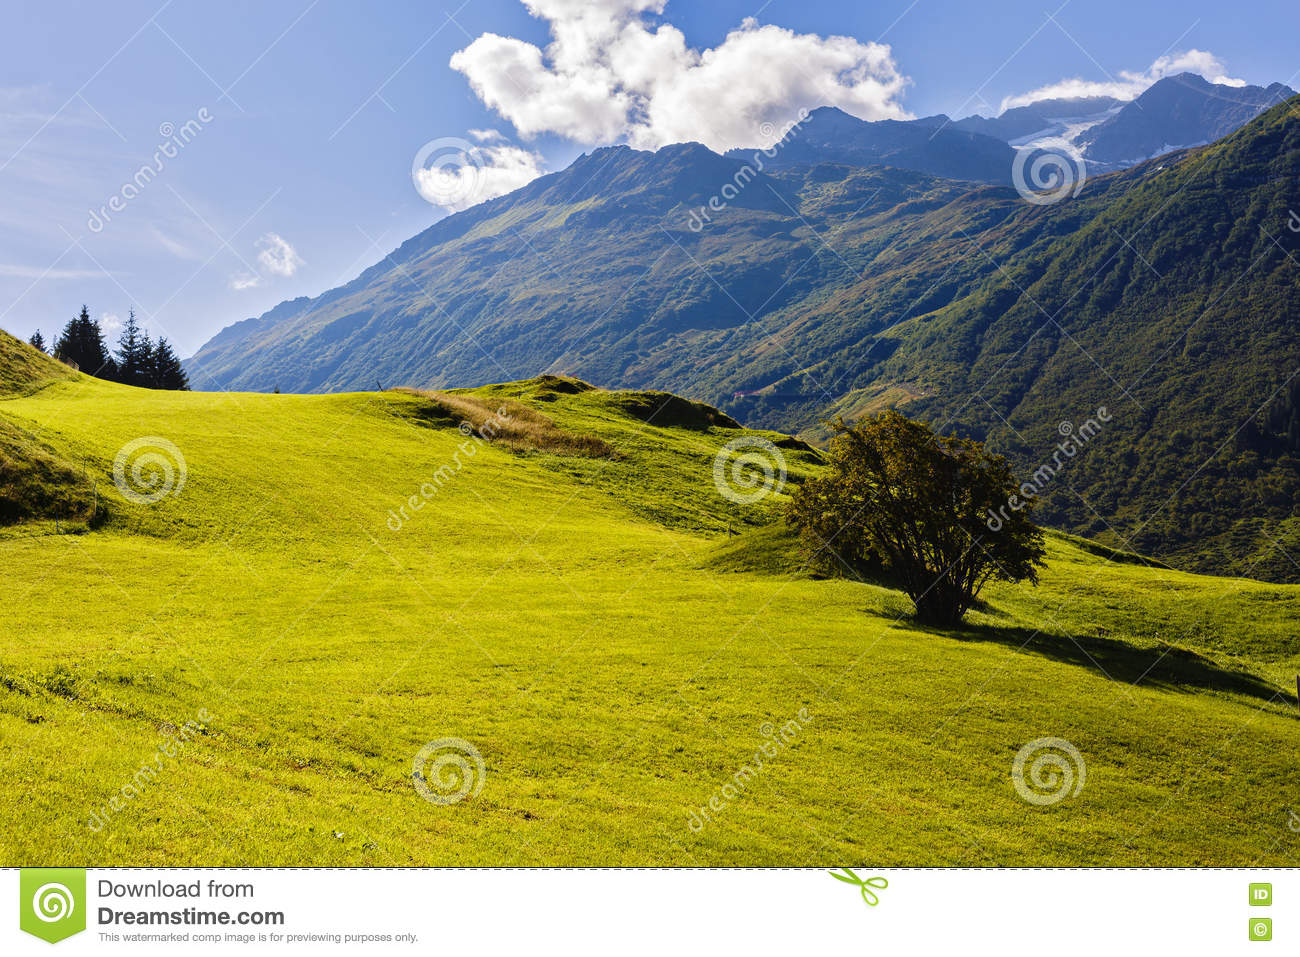 Beautiful mountains landscape in Alps